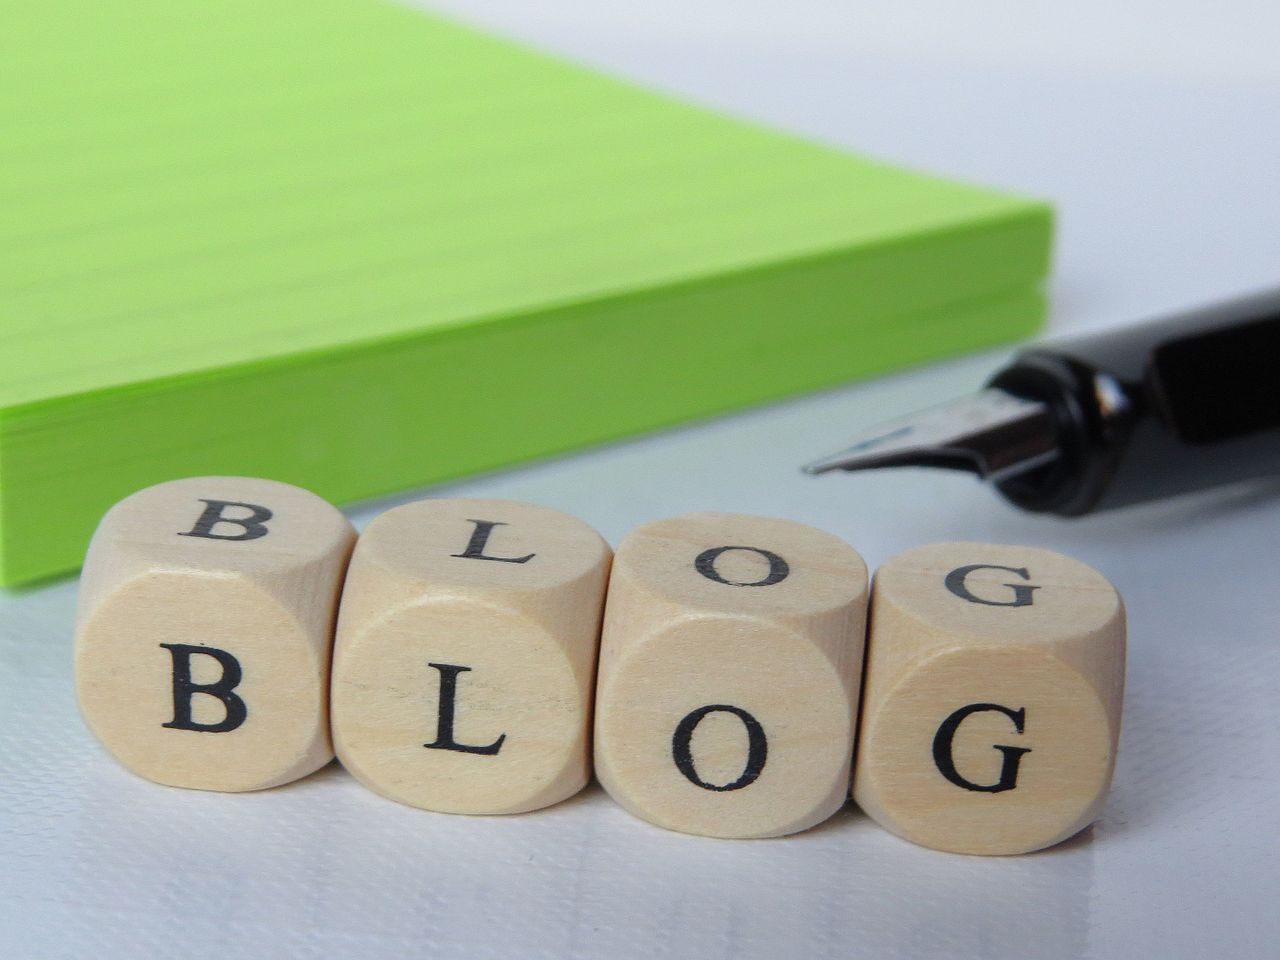 Do you want to blog?